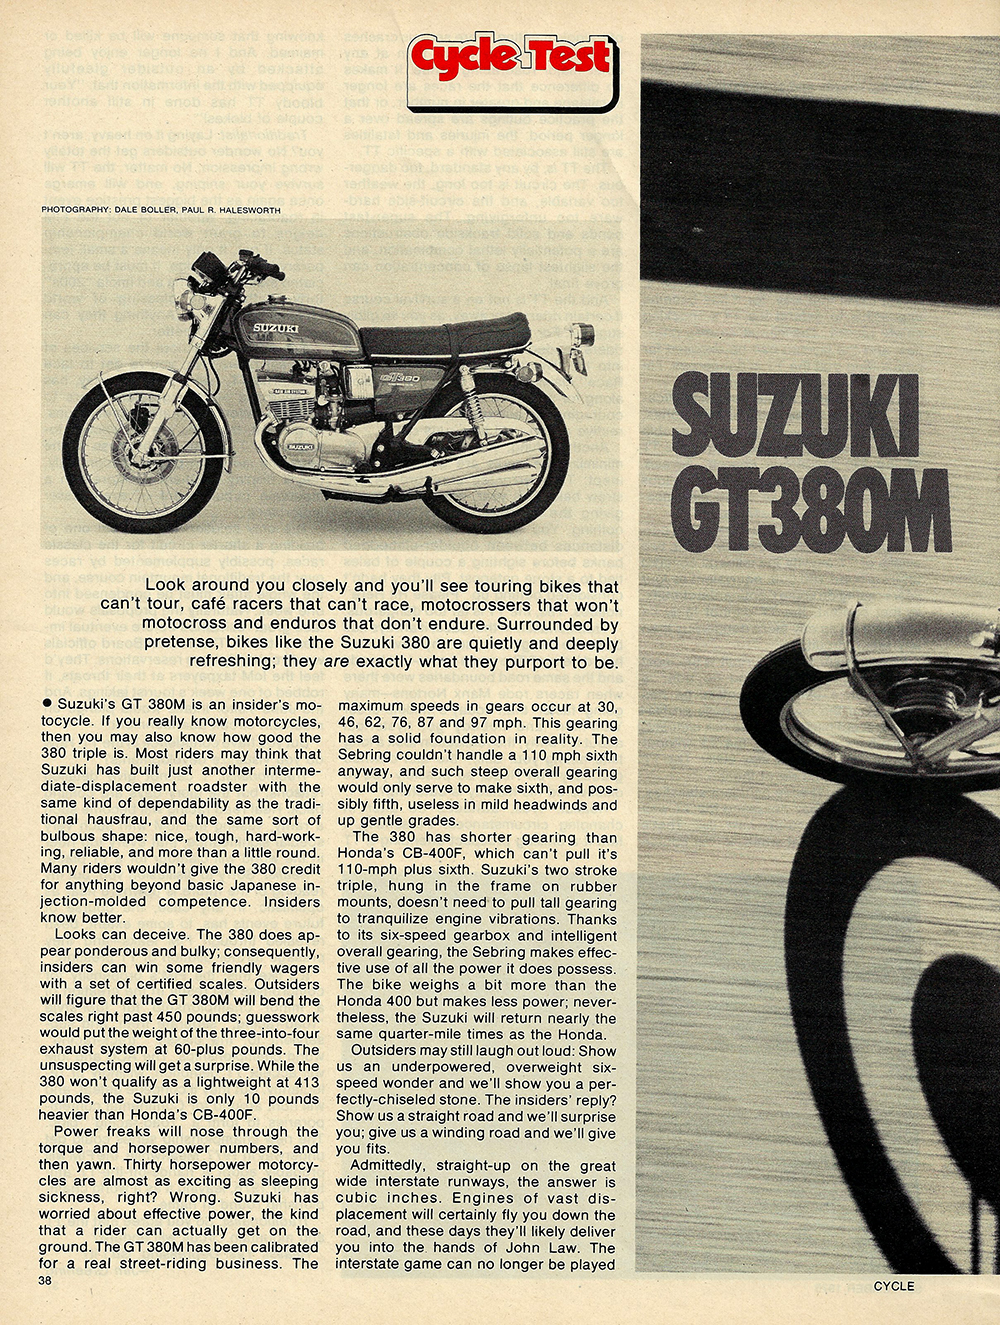 1975 Suzuki GT380M road test 1.JPG